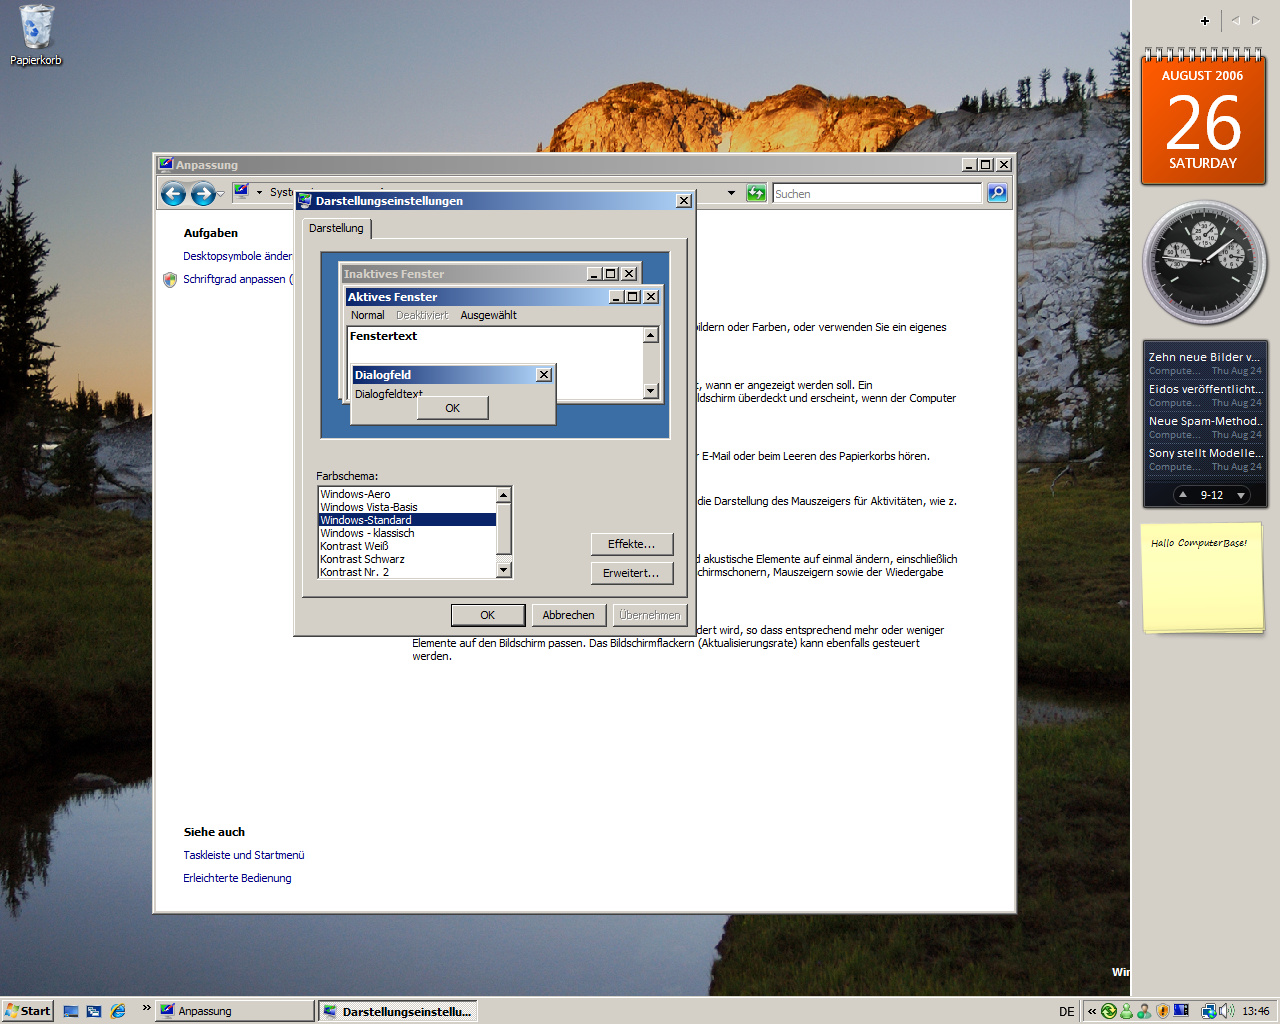 Windows Vista Build 5536 - Skins - Klassik wie bei Windows 2000